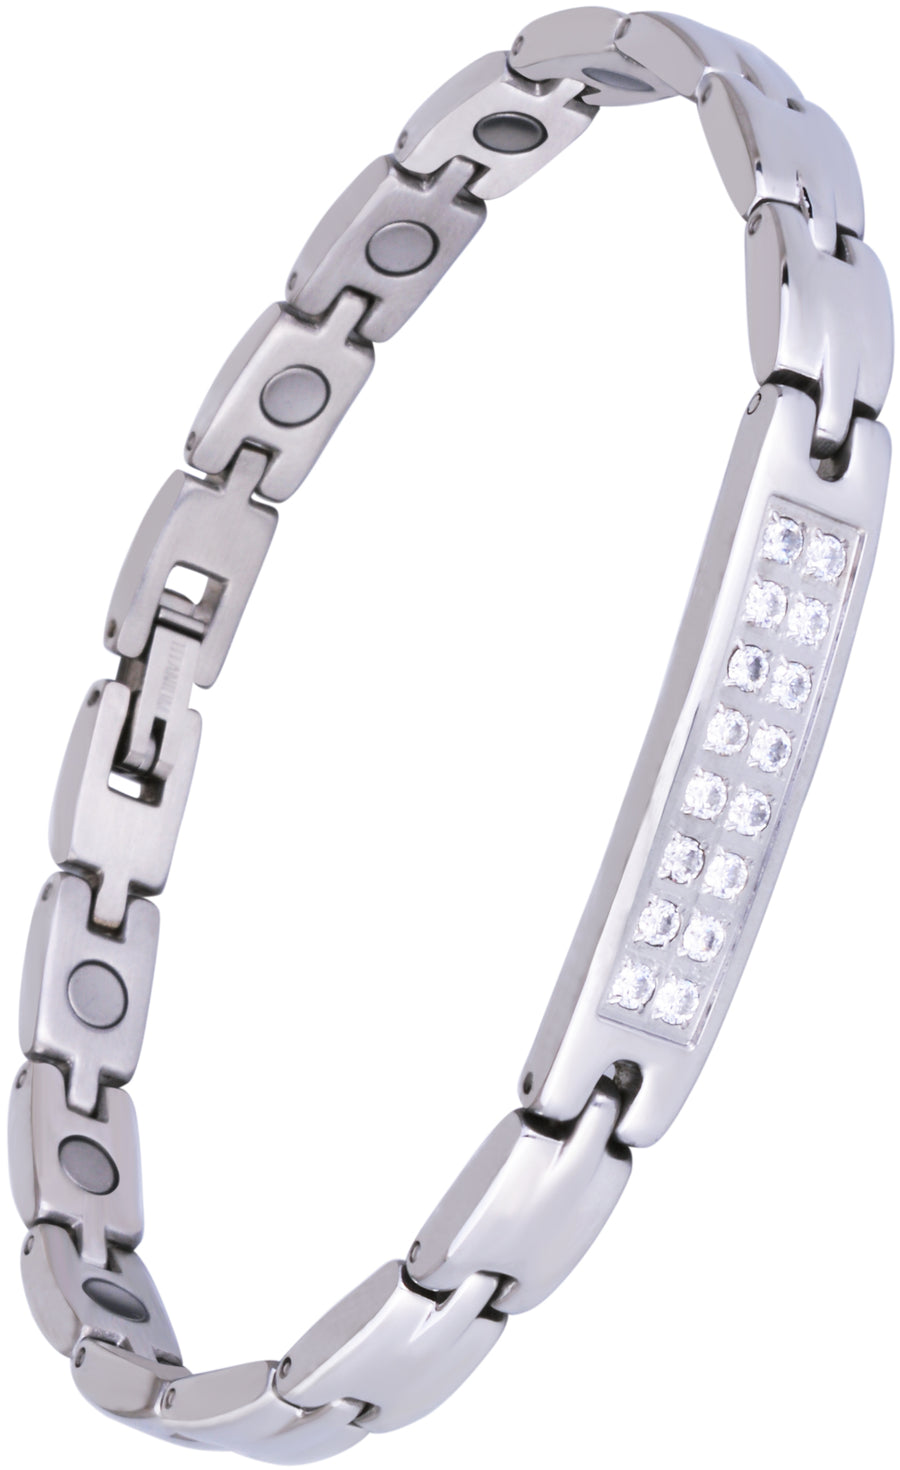 Sparkling Womens Czech Crystal Titanium Magnetic Therapy - Anklet/Large Bracelet: 9.4 inches (24cm) / Silver - Smarter LifeStyle Shop